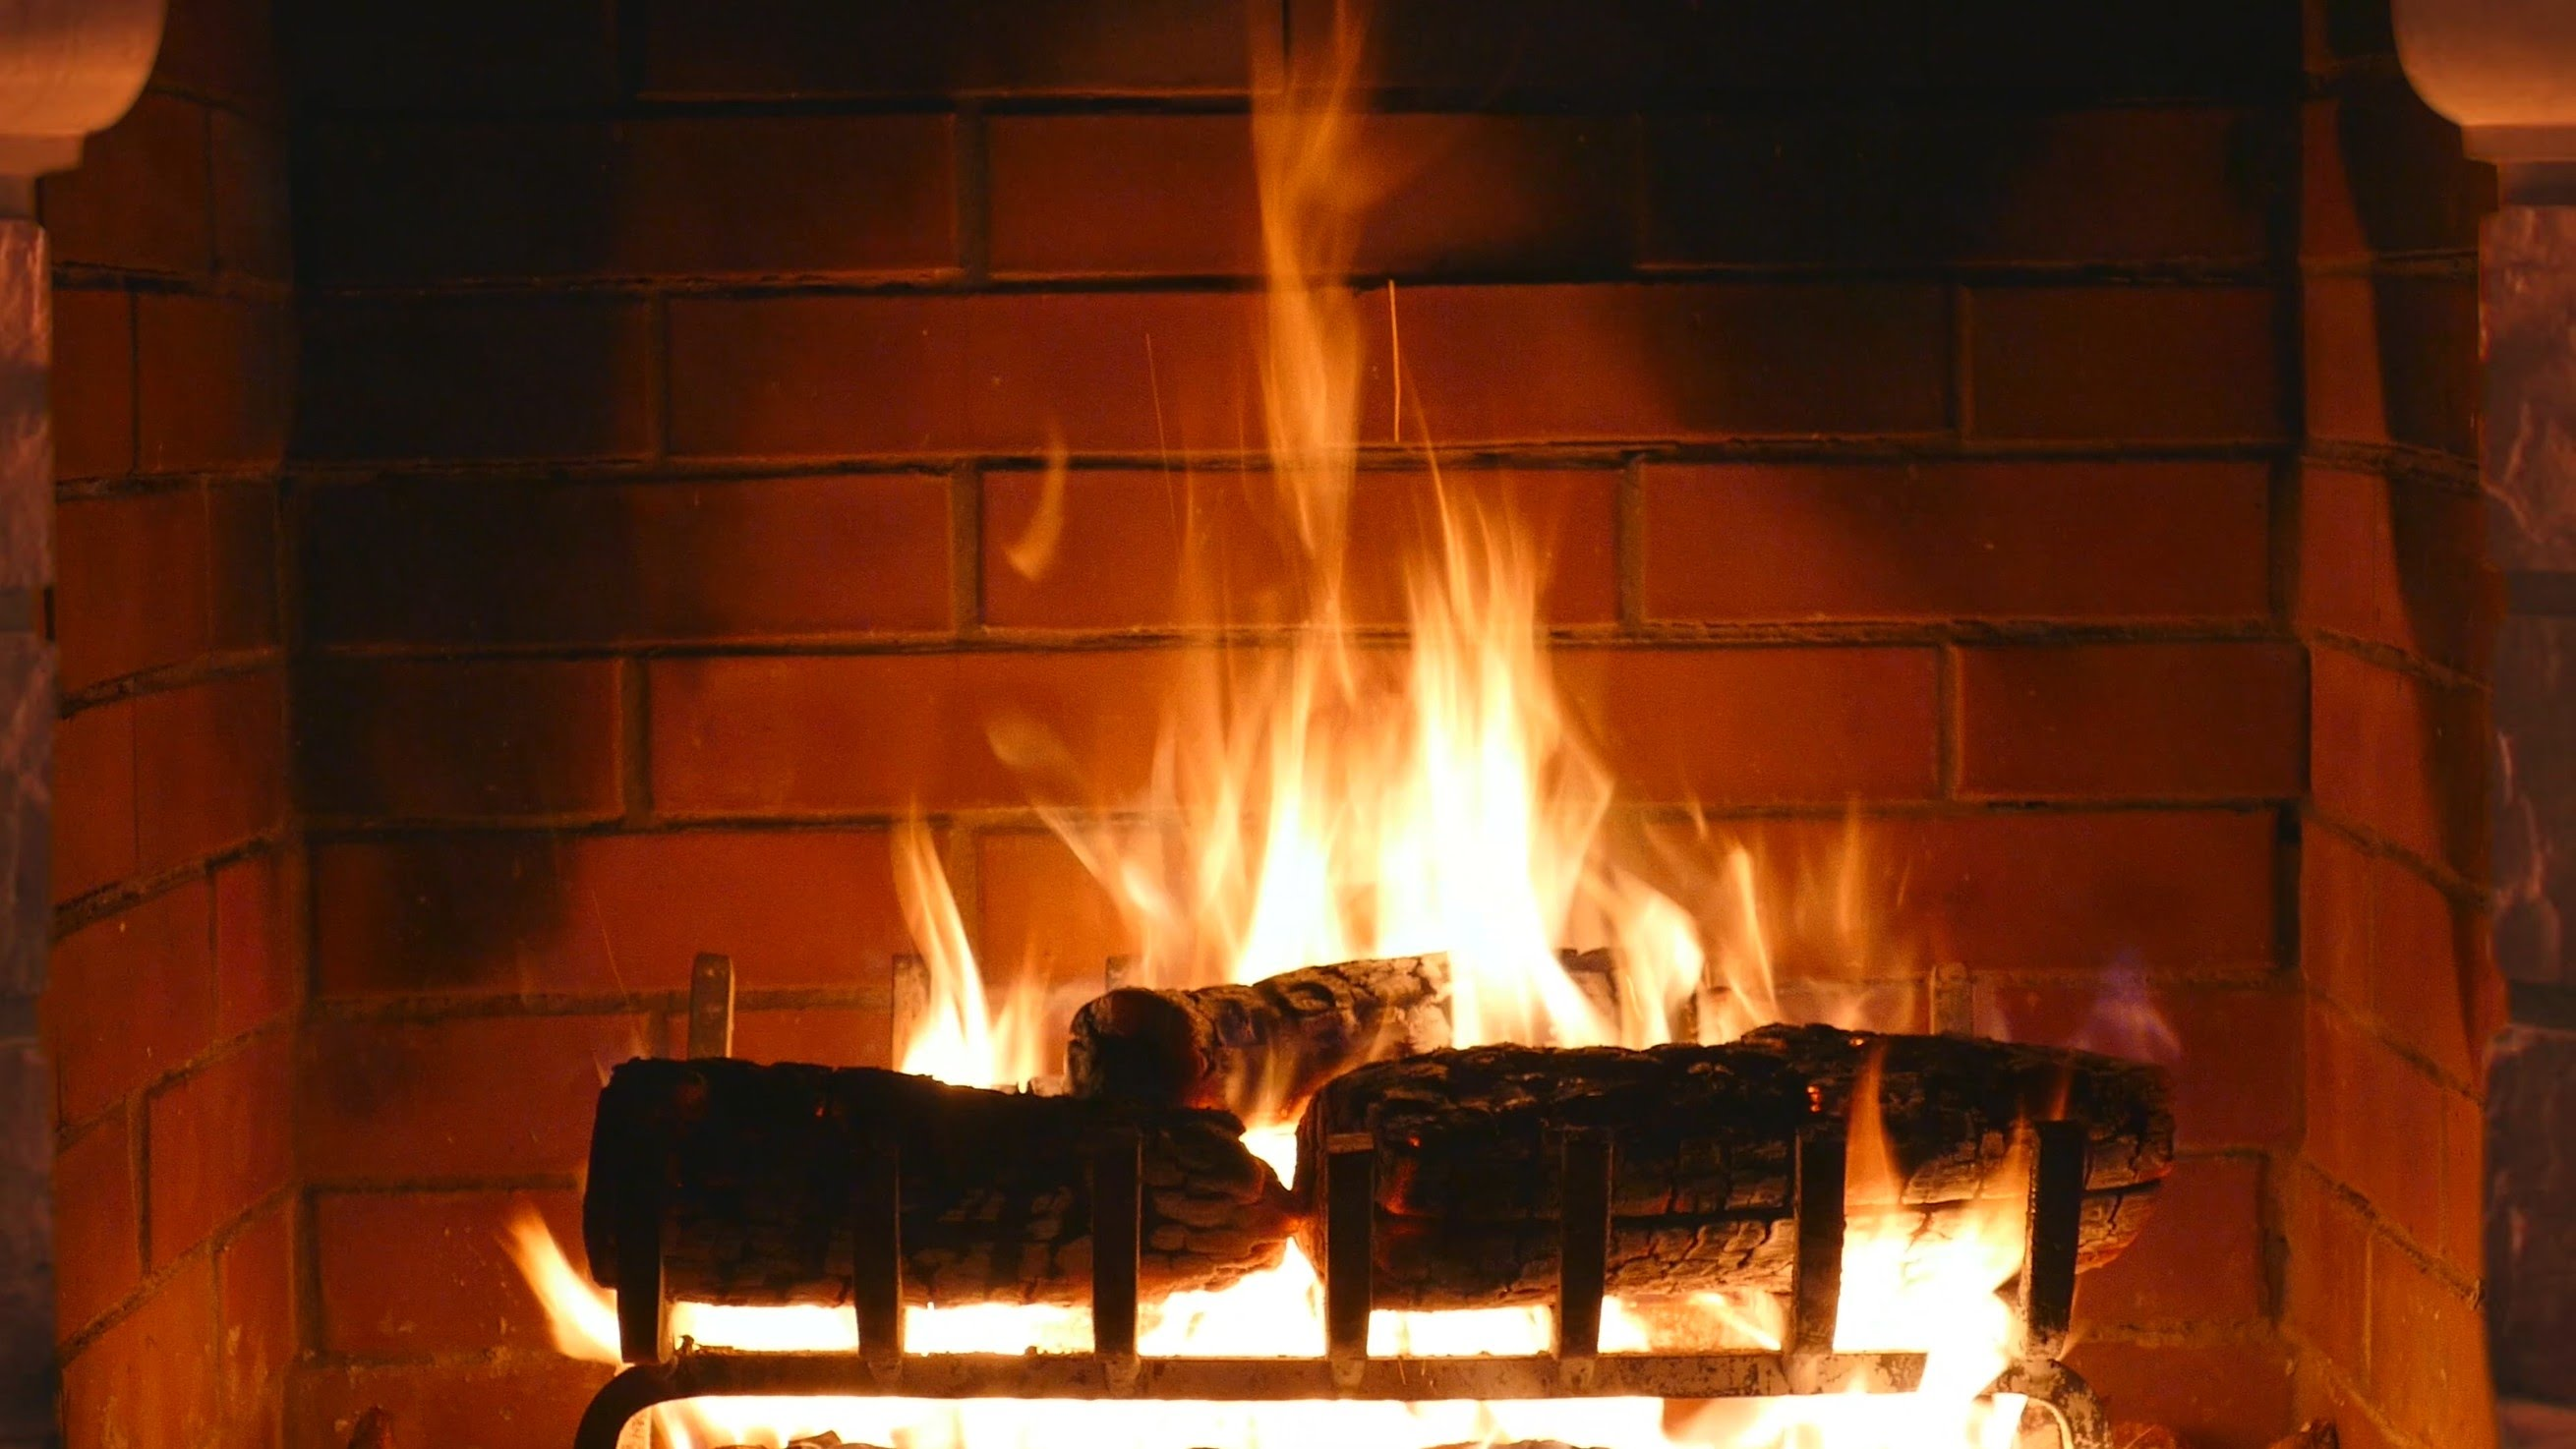 wallpaper wiki fireplace desktop wallpapers pic wpe008679